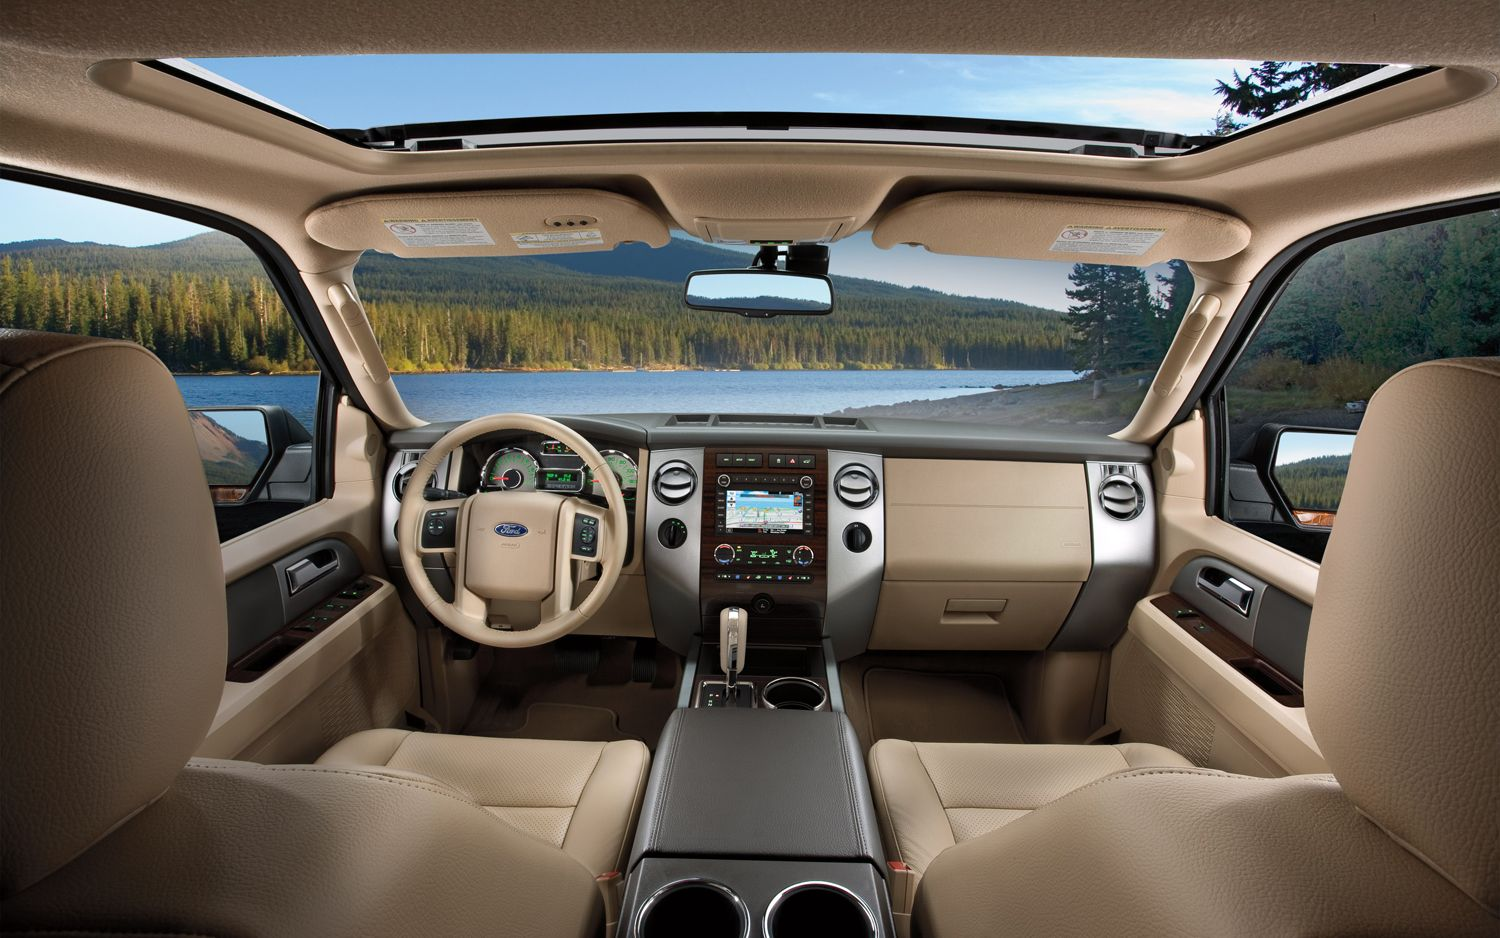 2014 Ford Expedition 2014 Ford Expedition Interior